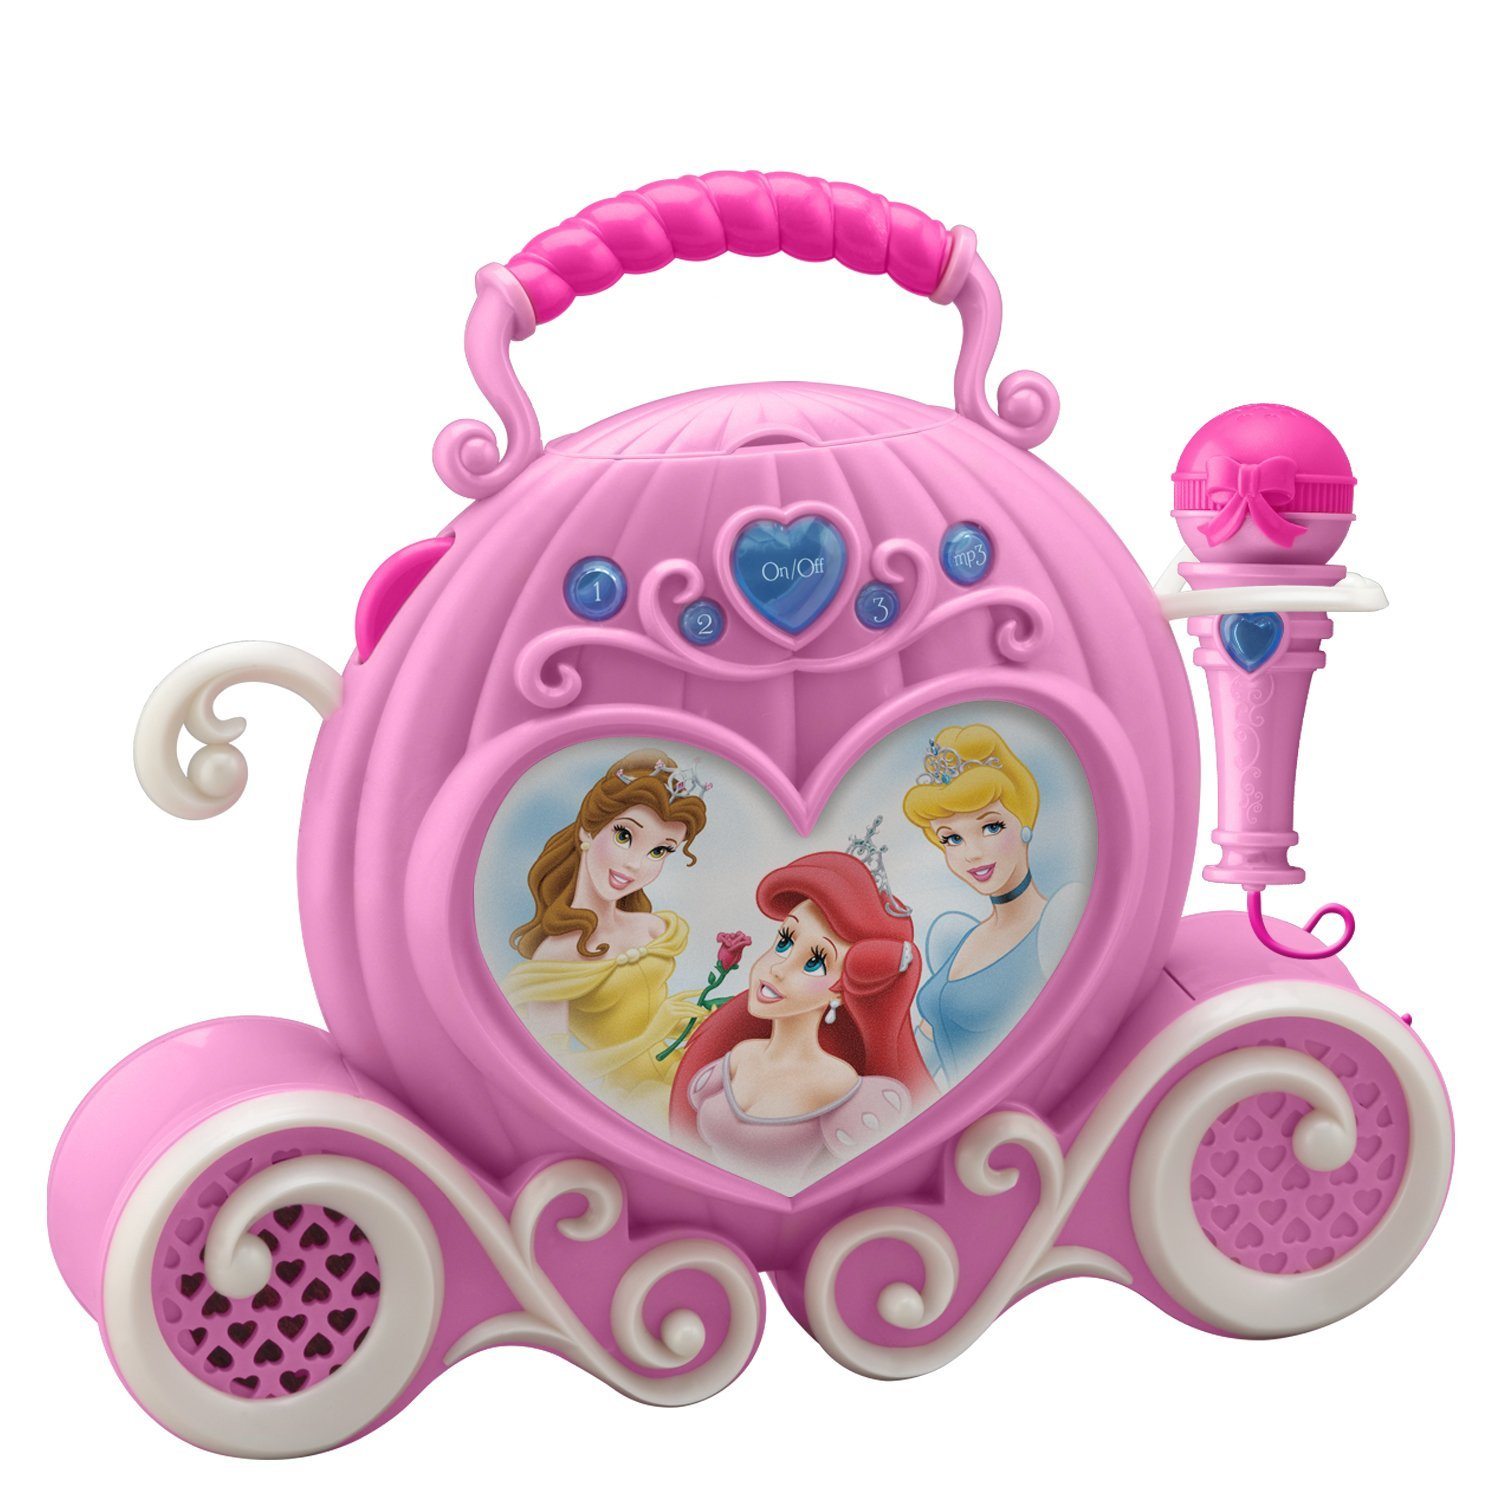 Sofia The First Karaoke Boombox furthermore Princess 20cd 20player 20microphone moreover Editor pambazuka likewise Kids Karaoke Microphone additionally Chevrolet S10 1982. on disney princess cd player with microphone